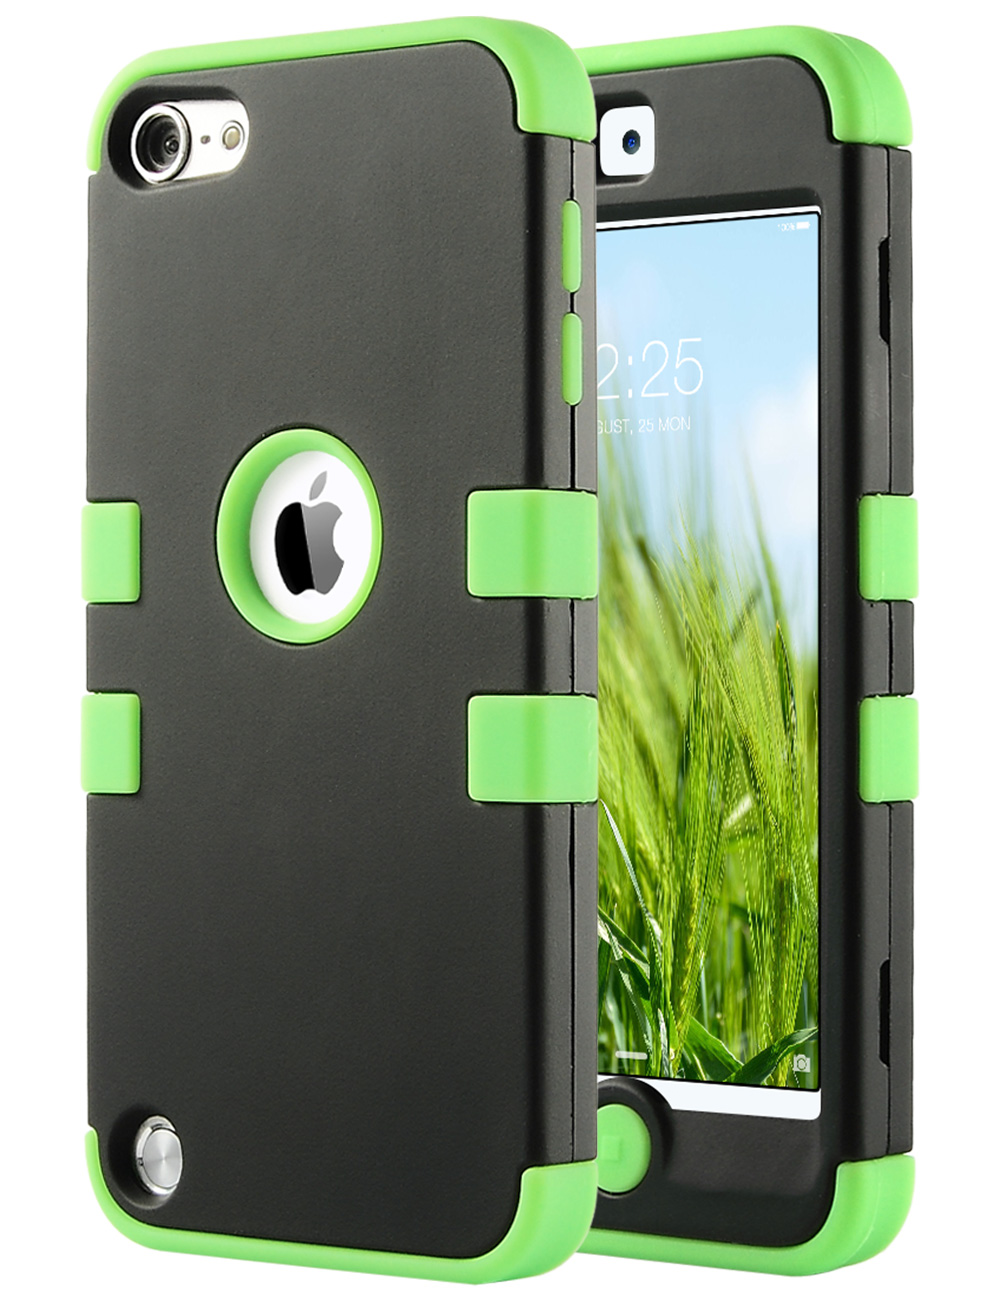 Apple-iPod-Touch-5-6th-Gen-Case-Hybrid-High-Impact-Armor-Hard-amp-Soft-Rubber-Cover thumbnail 14